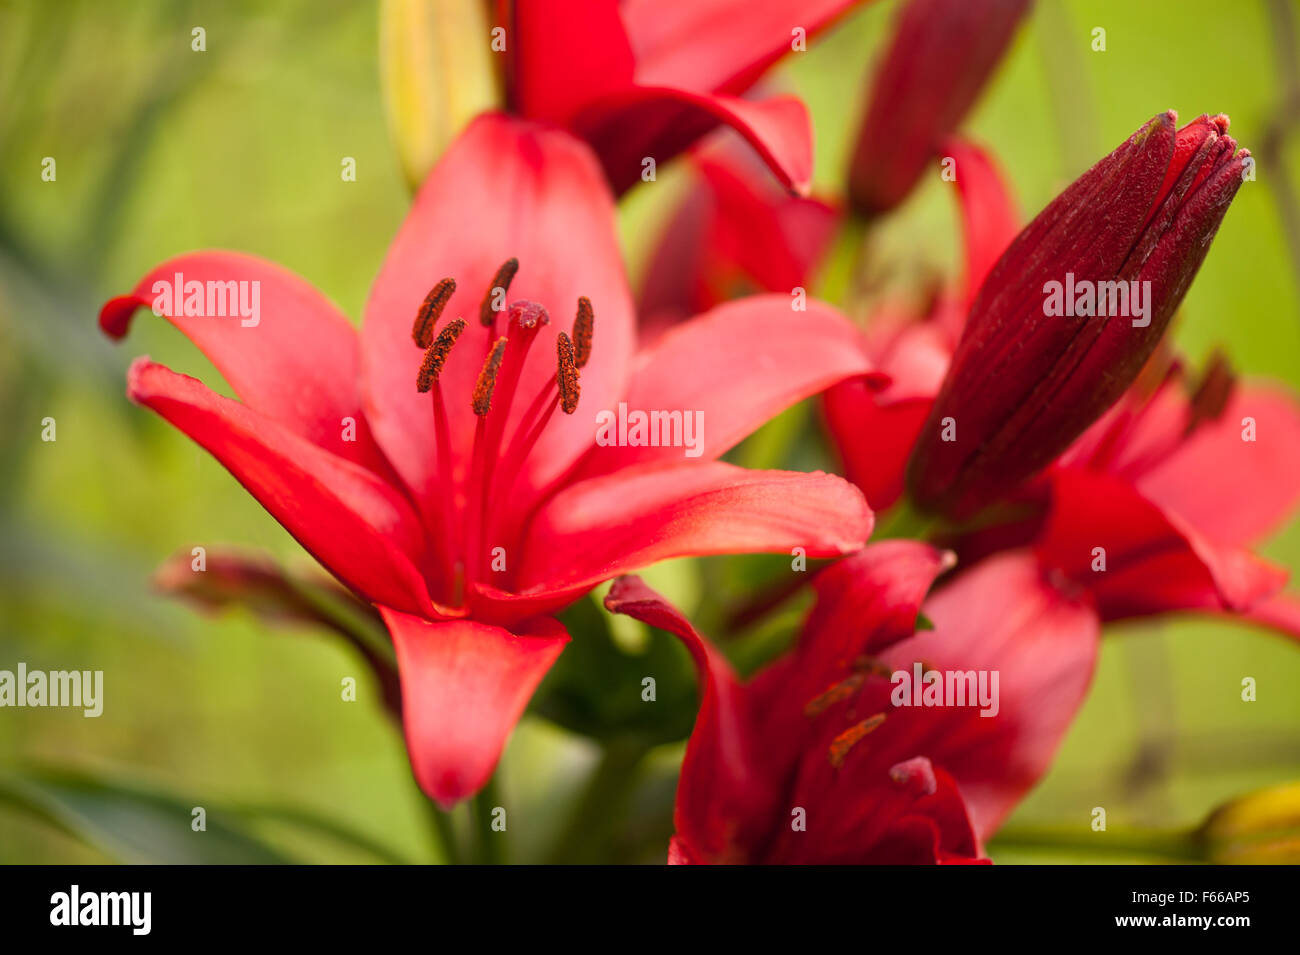 Red lily flower stamens large flower macro deciduous perennial red lily flower stamens large flower macro deciduous perennial plant in the liliaceae family flowers grow in poland europe mightylinksfo